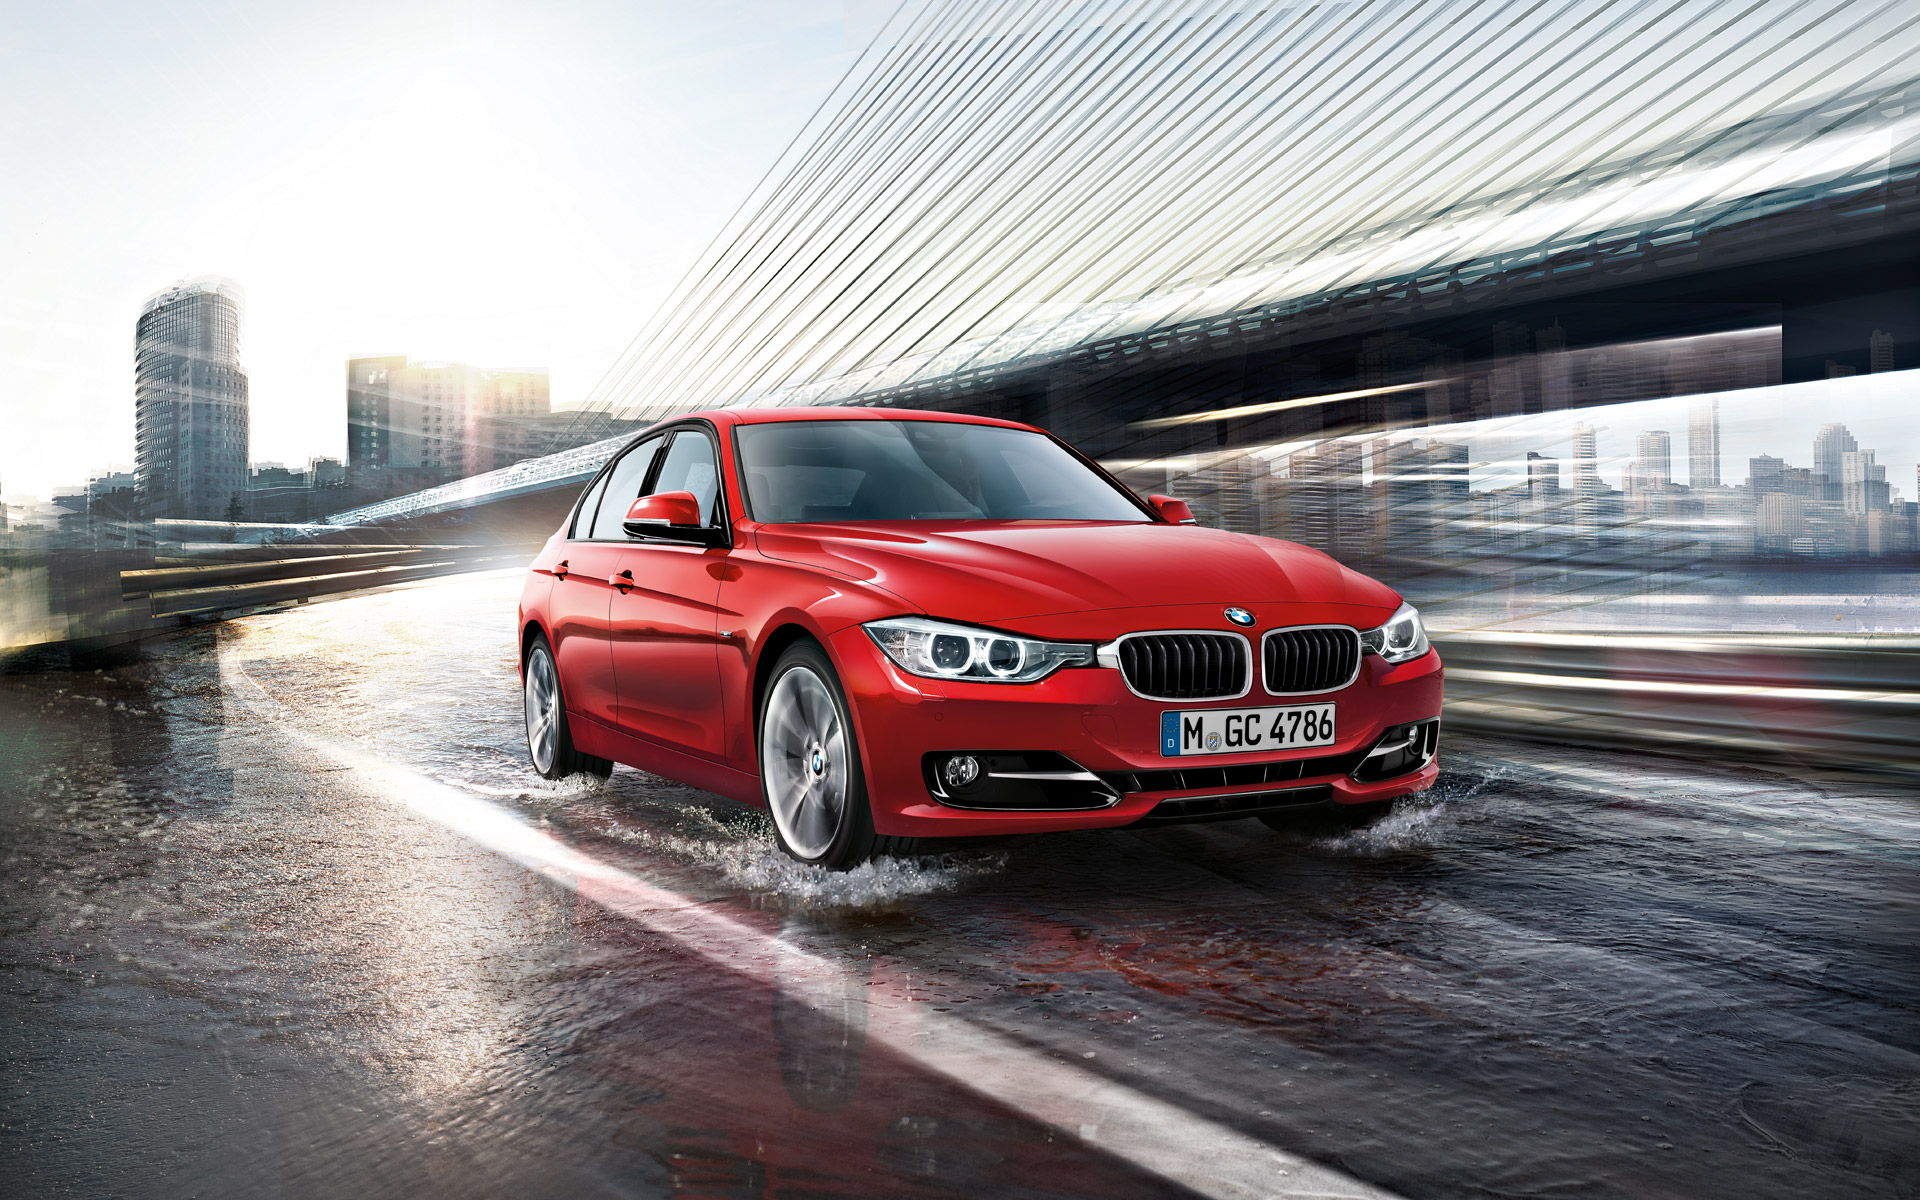 BMW_3series_wallpaper_18_1920